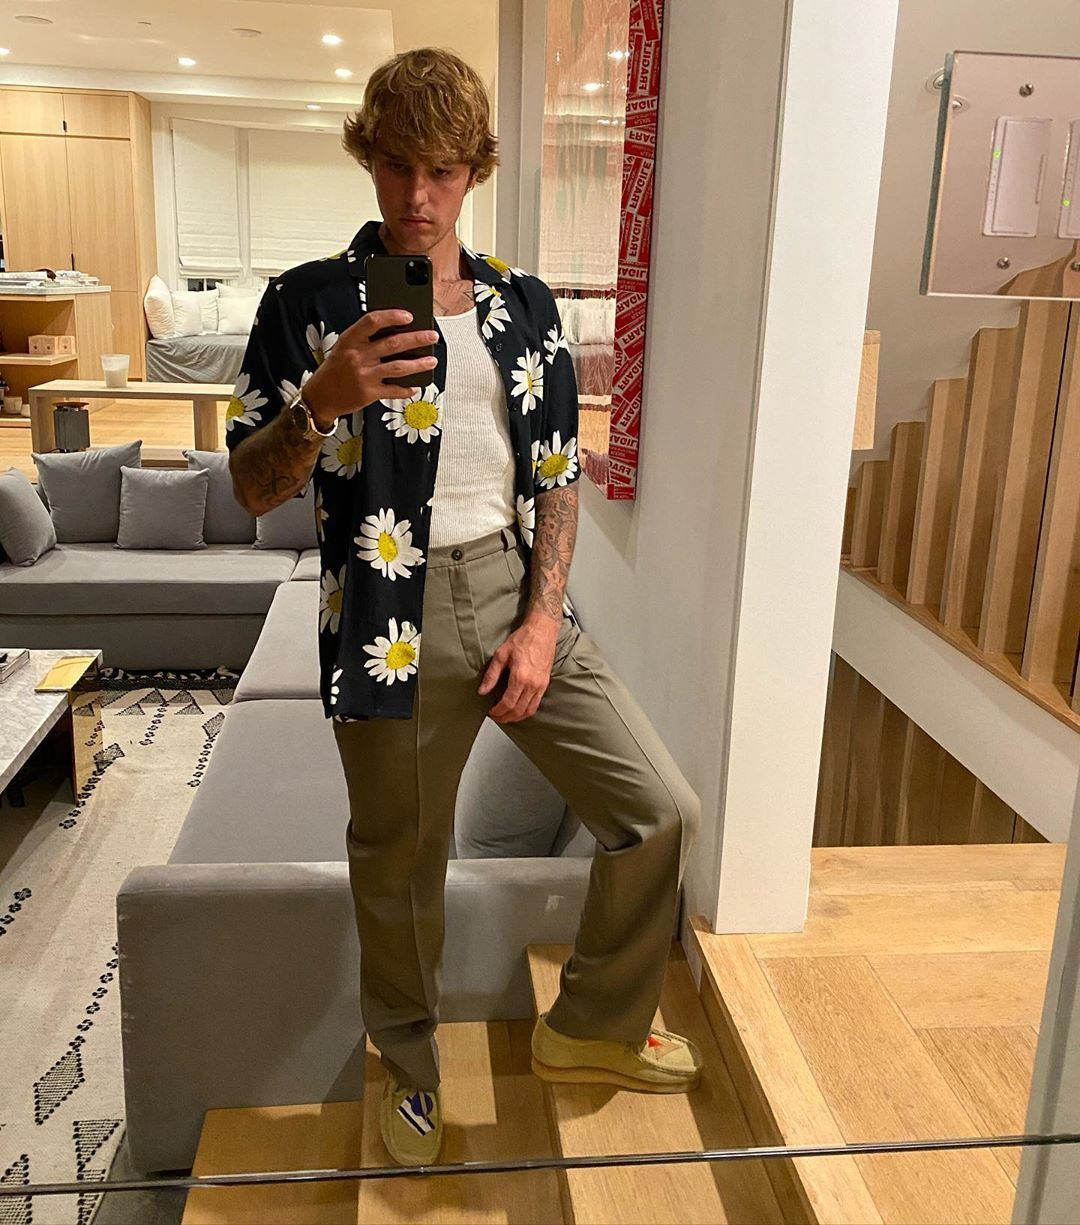 Justin Bieber On Instagram I Love Comin Up With New Vibes With Karlawelchstylist In 2020 Justin Bieber News Justin Bieber Style Justin Bieber